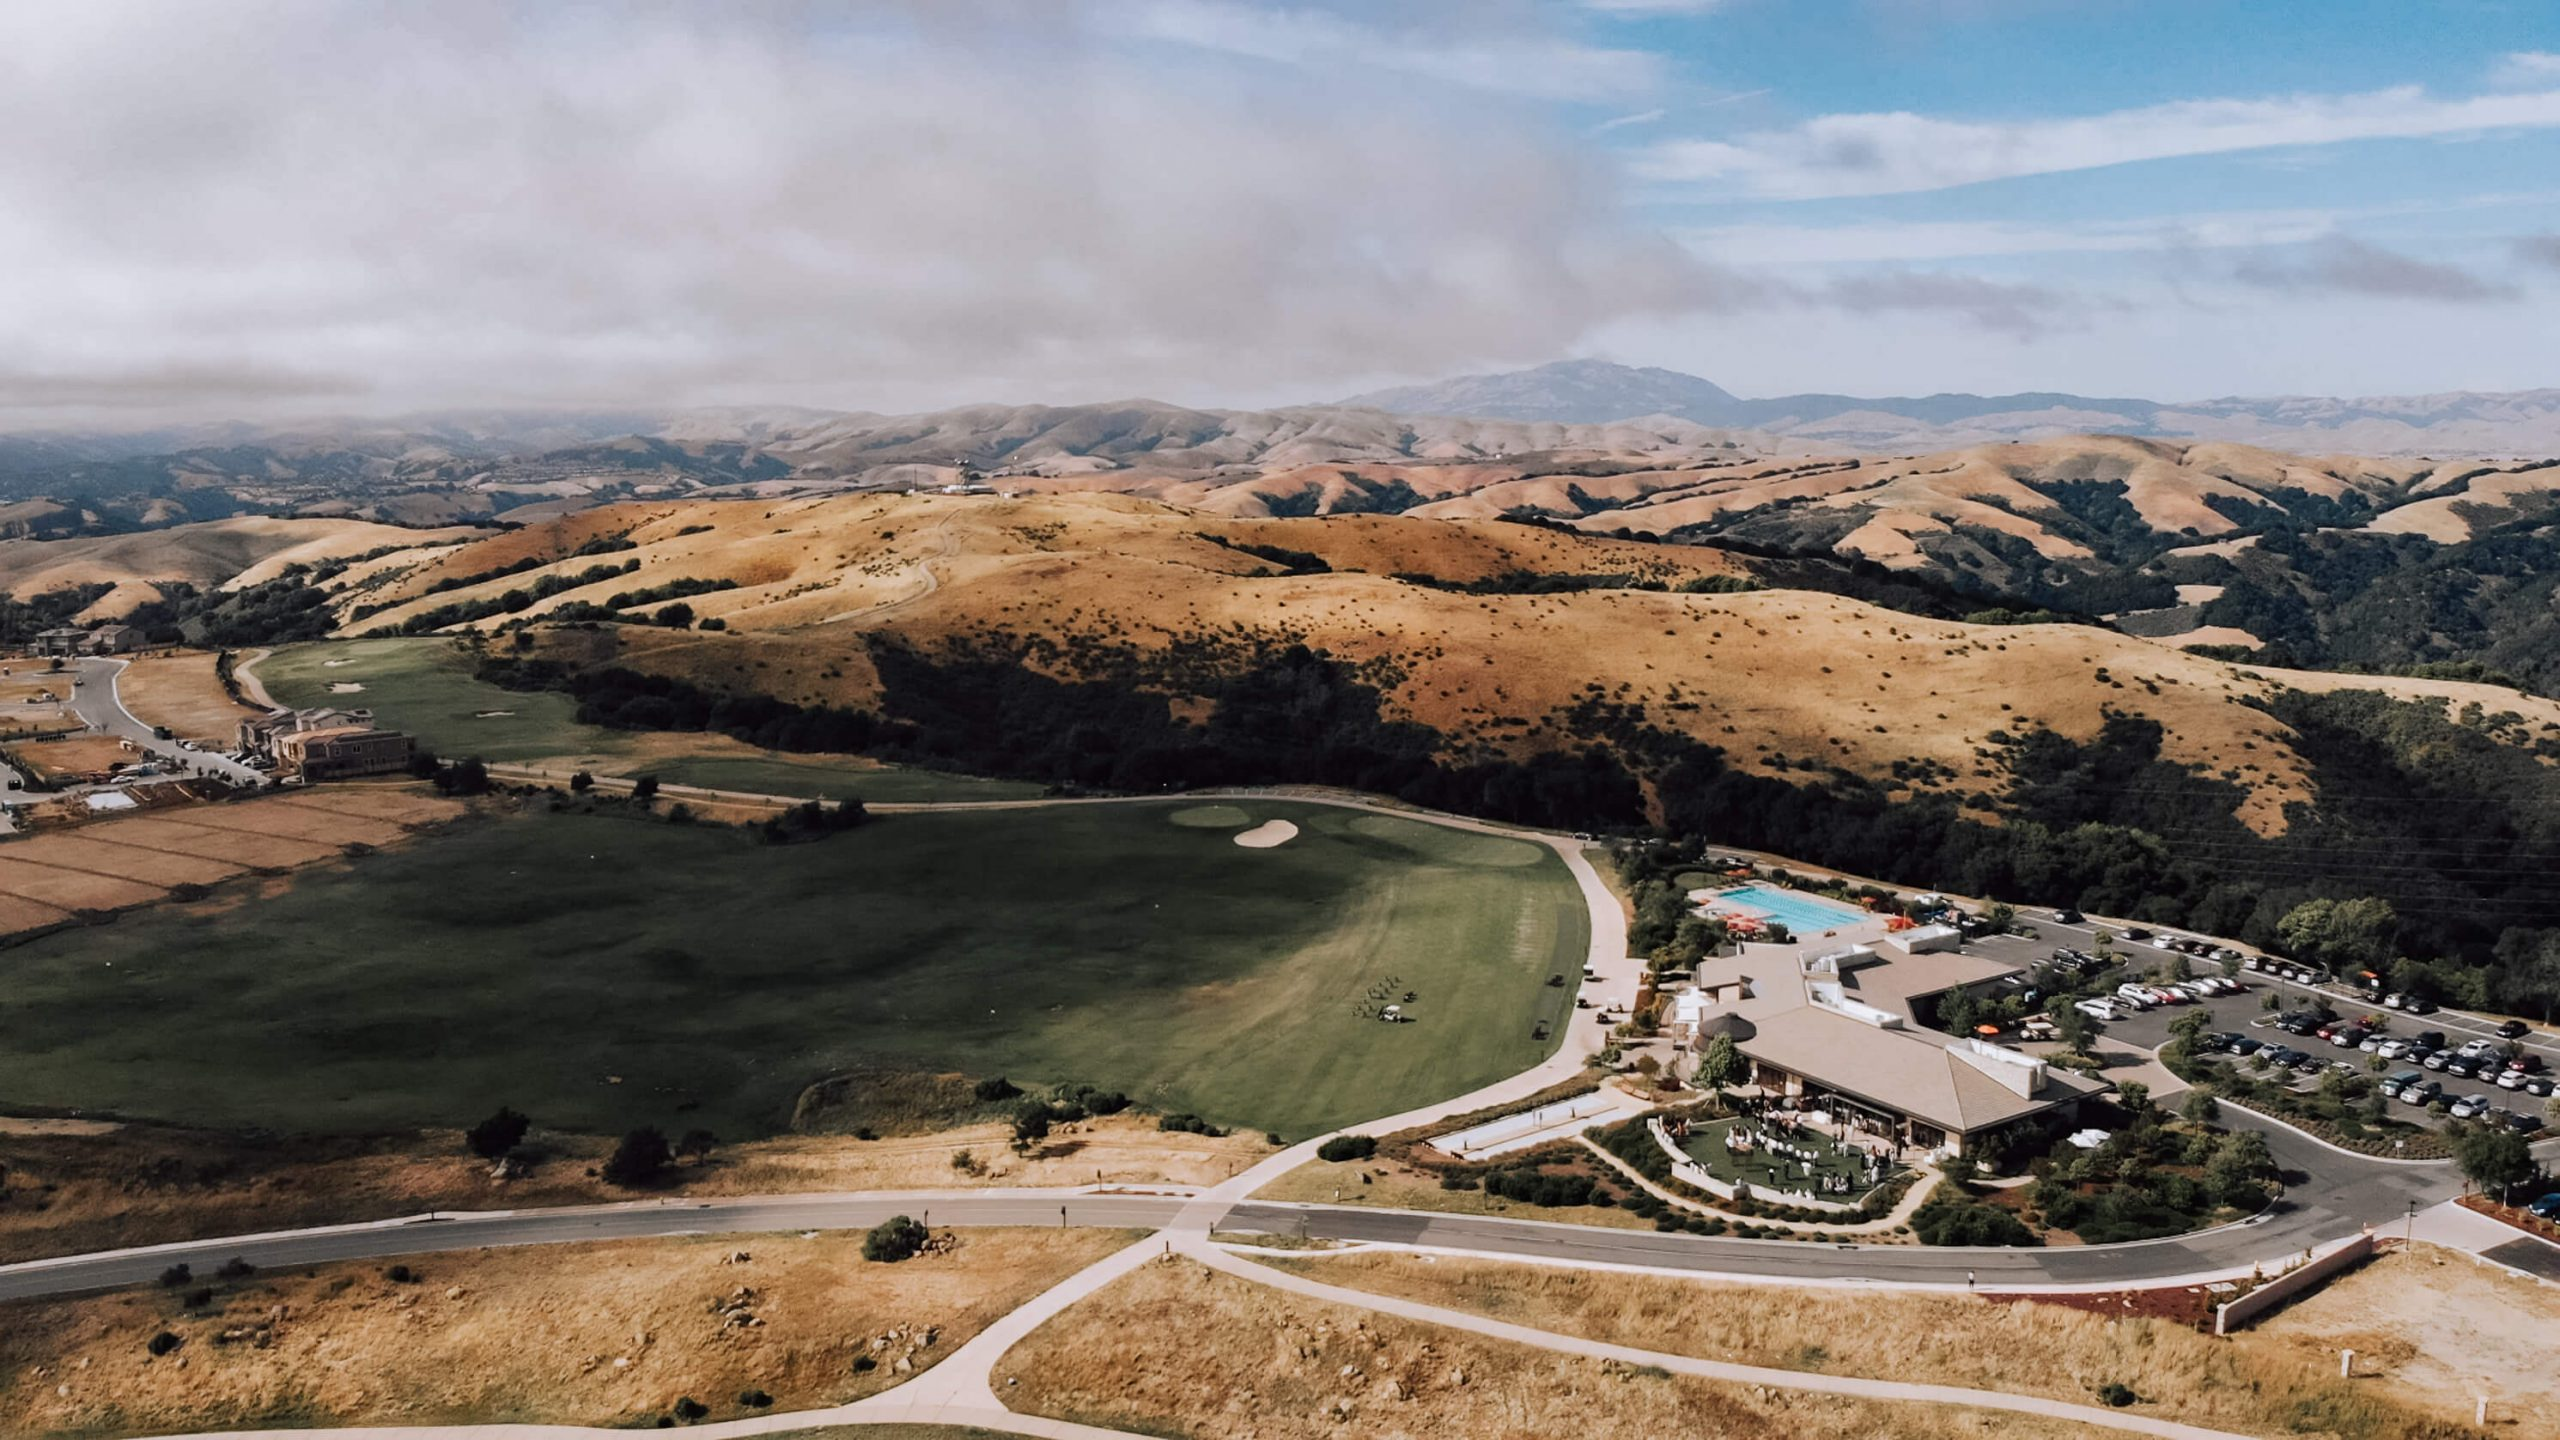 Drone shot of the wedding venue Stonebrae Country Club, Hayward, CA under the clouds